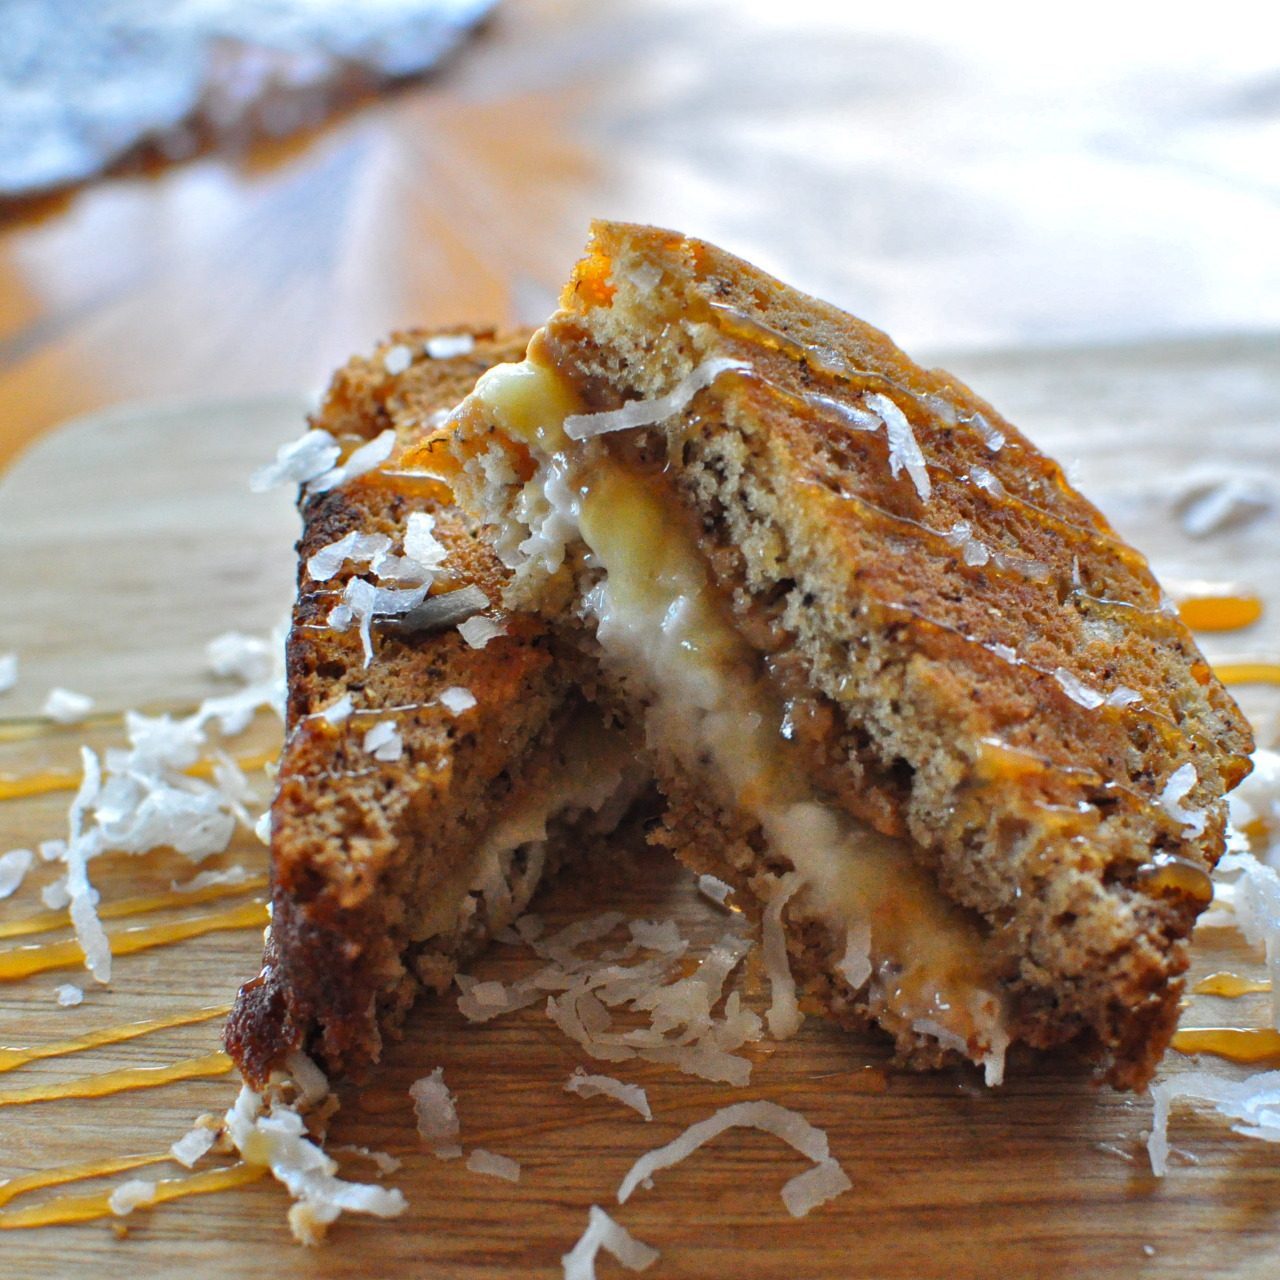 Banana Bread Paninis with Coconut, Peanut Butter, and Bananas [[MORE]] — Bananas and peanut butter is a classic combination, so why not enjoy it as a sandwich?   Add in coconut, caramel, and more bananas, and you will love all the different textures and layers of flavors of this sandwich. Each bite is filled with the crunch from the coconut, creamy peanut butter, and rich, sweet caramel sauce. This sandwich makes for the perfect afternoon treat.   Banana Bread Paninis with Coconut, Peanut Butter, and Bananas 1 tbsp plain greek yogurt 1/4 tsp almond extract 1 tbsp shredded coconut 1 tsp sugar 4 slices banana bread, about 1 inch thick 1/2 banana 1 tbsp peanut butter 2 tsp caramel sauce 2 tsp butter — In a bowl, combine the yogurt, almond extract, coconut, and sugar. Spread the coconut mixture on 2 slices of bread. Slice 1/4 of a banana on top of the coconut.  Spread 1/2 tbsp peanut butter on each of the other two slices of bread. Spread 1 tsp caramel sauce on top of the peanut butter. Take on peanut covered sliced of bread and sandwich it with one coconut covered slice of bread. Heat a panini press or skillet over medium heat. Spread 1/2 tsp butter on the outside on each slice of bread. Cook in the panini press or skillet until golden brown on both sides. Makes 2 sandwiches